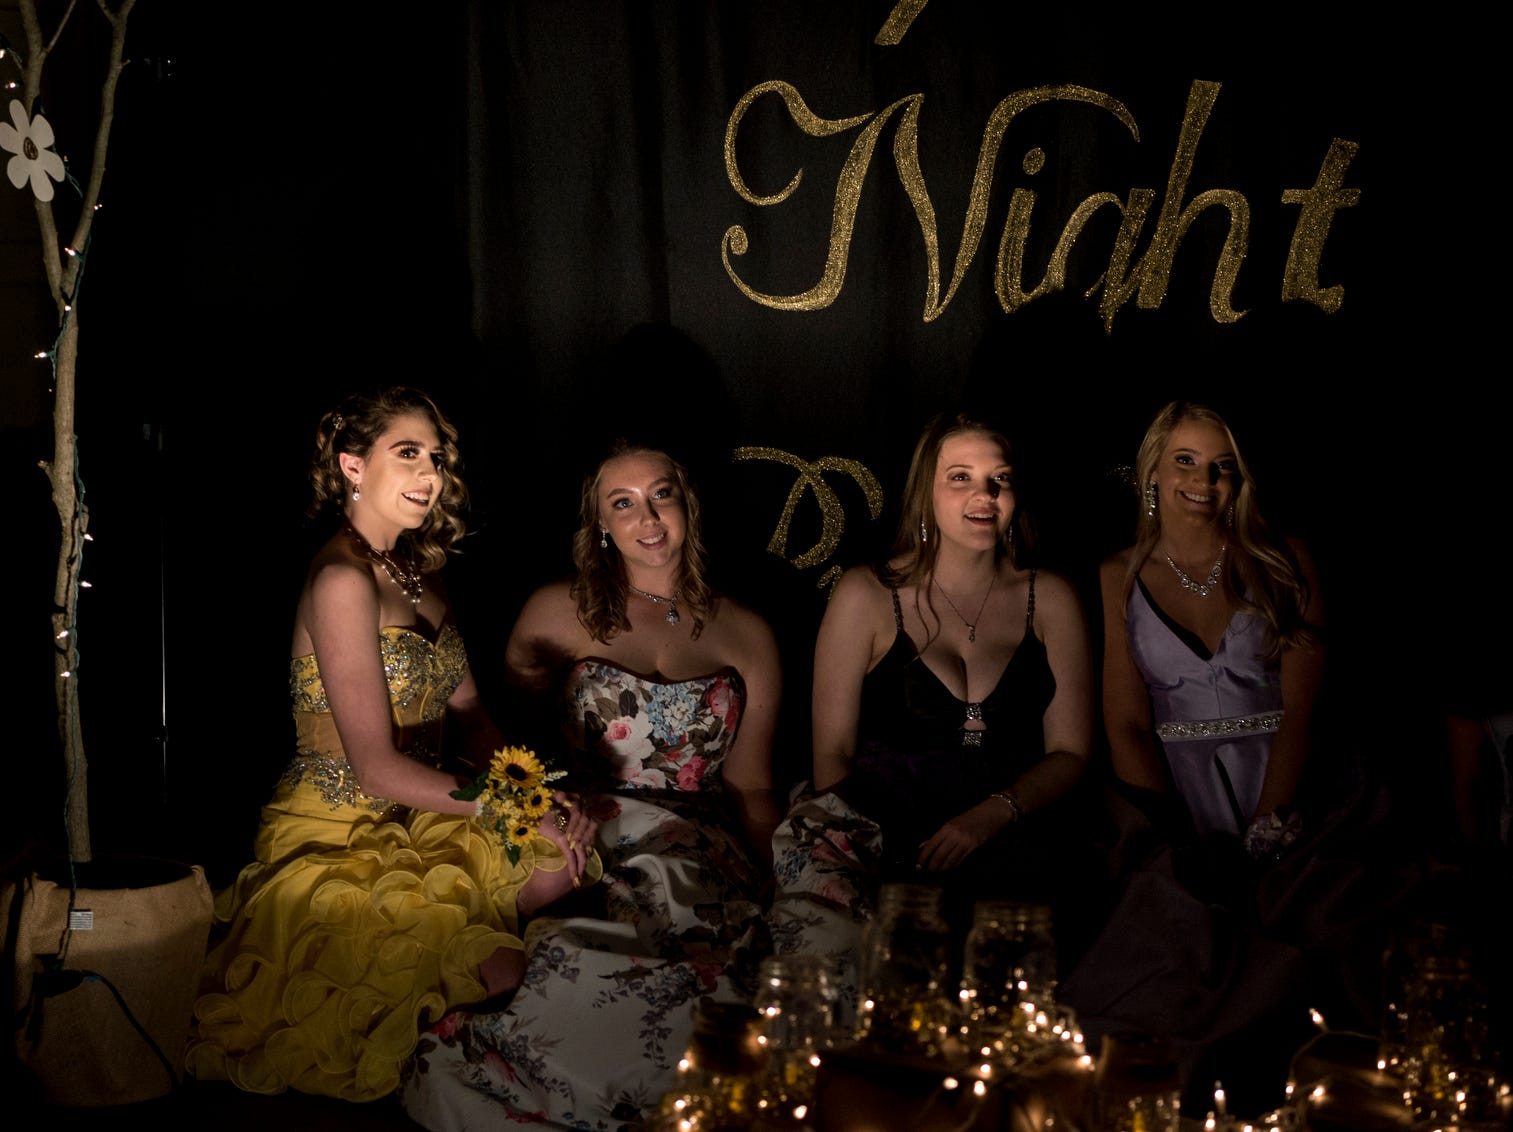 """Central High School students pose for a picture in front of a banner that reads """"Uptown Night Prom 2019"""" during the school's prom held at the Vanderburgh 4-H Center auditorium in Evansville, Ind., Saturday, April 27, 2019."""